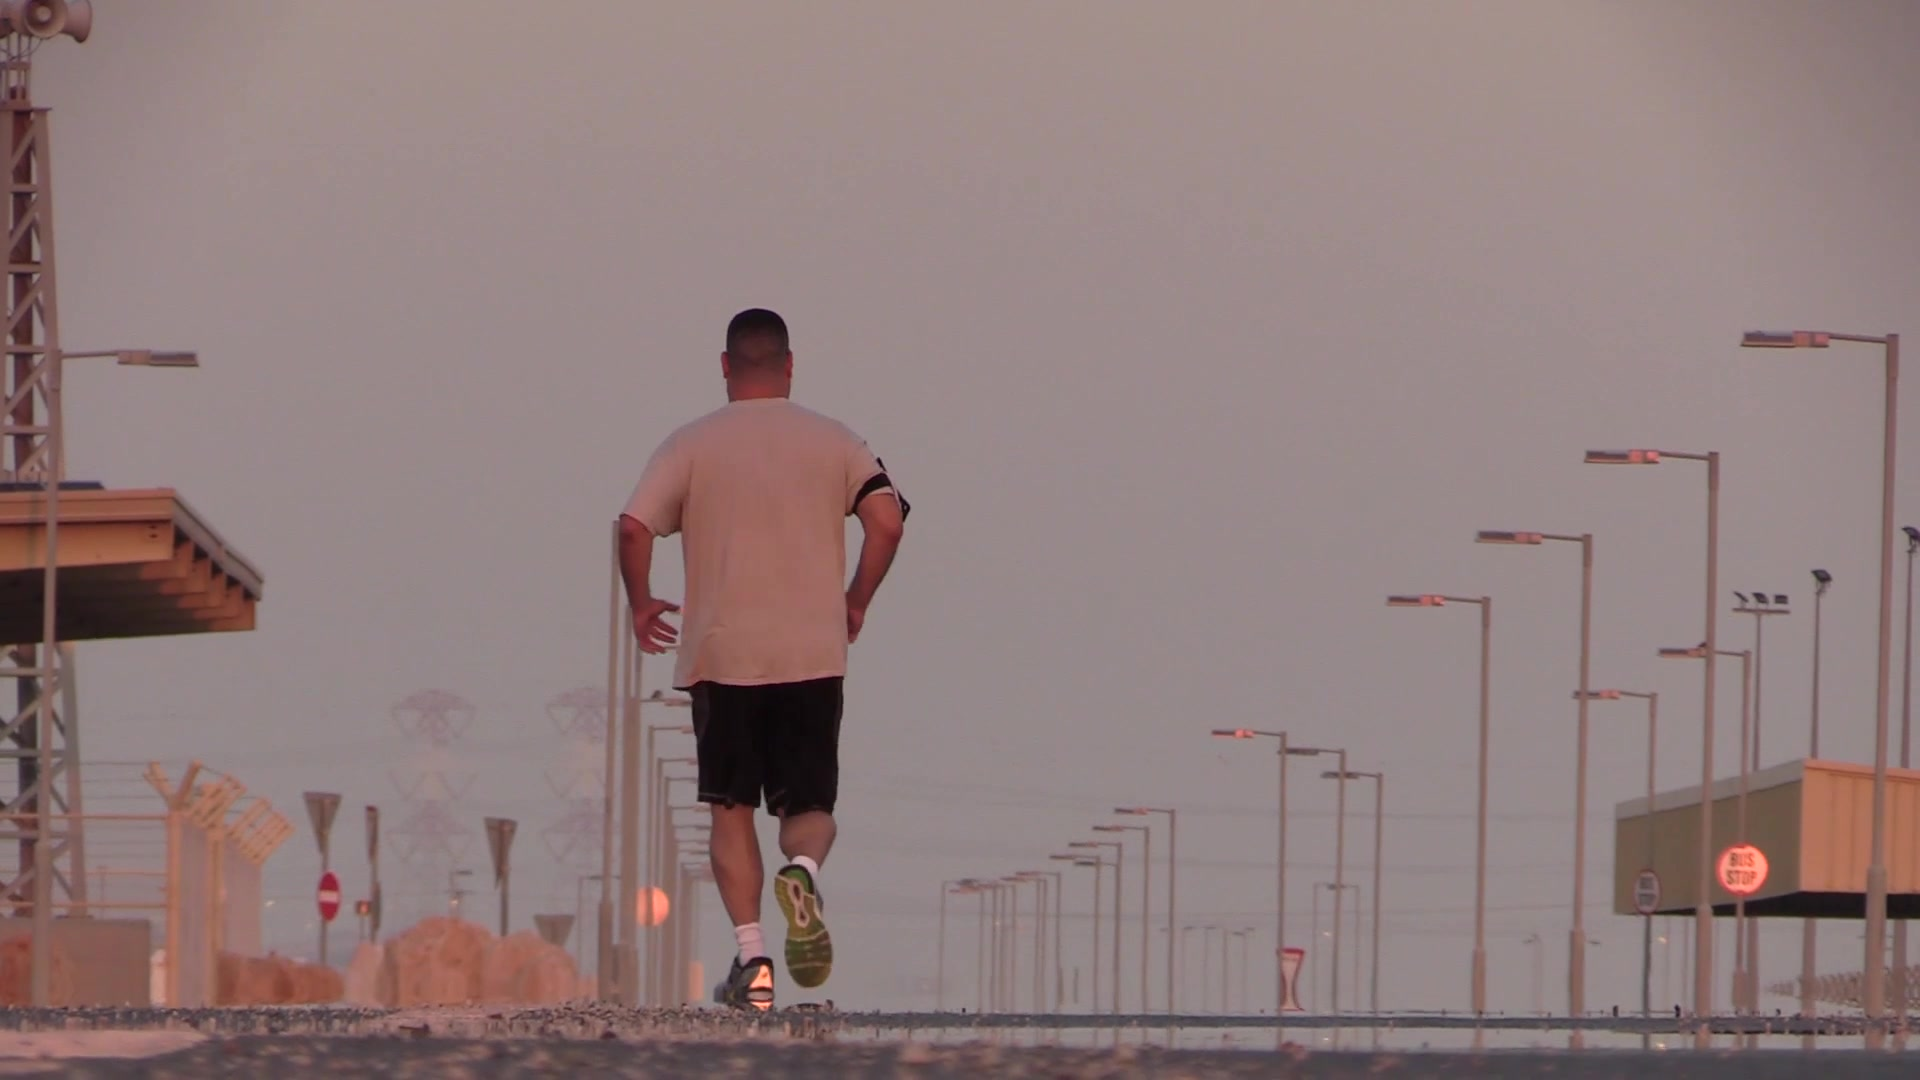 Chaplain (Maj.) Jack Miller, 379th Air Expeditionary Wing chaplain,  was diagnosed with adrenal cancer in 2012 and told by doctors that he would never run long distances again. While deployed at Al Udeid, Miller trained for months and was able to complete the base's Veterans Day 5K run Nov. 11, 2018.